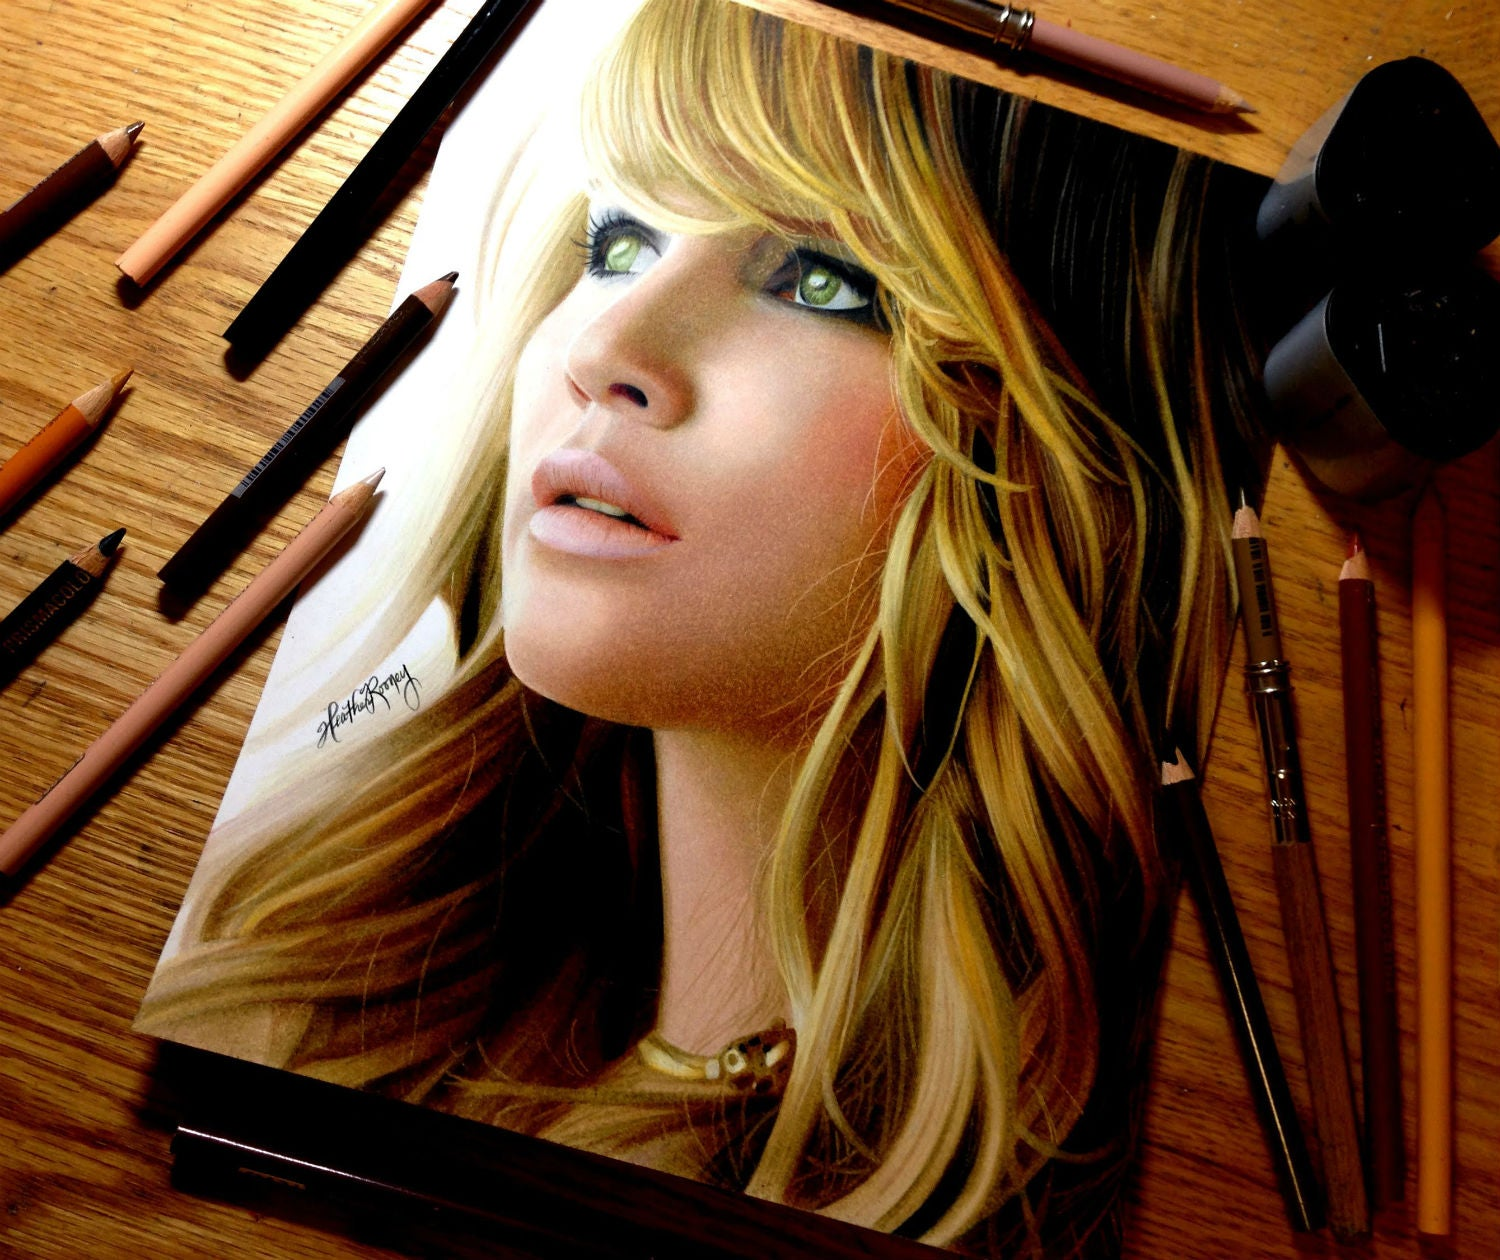 20-year-old makes amazing portraits just using colour pencils